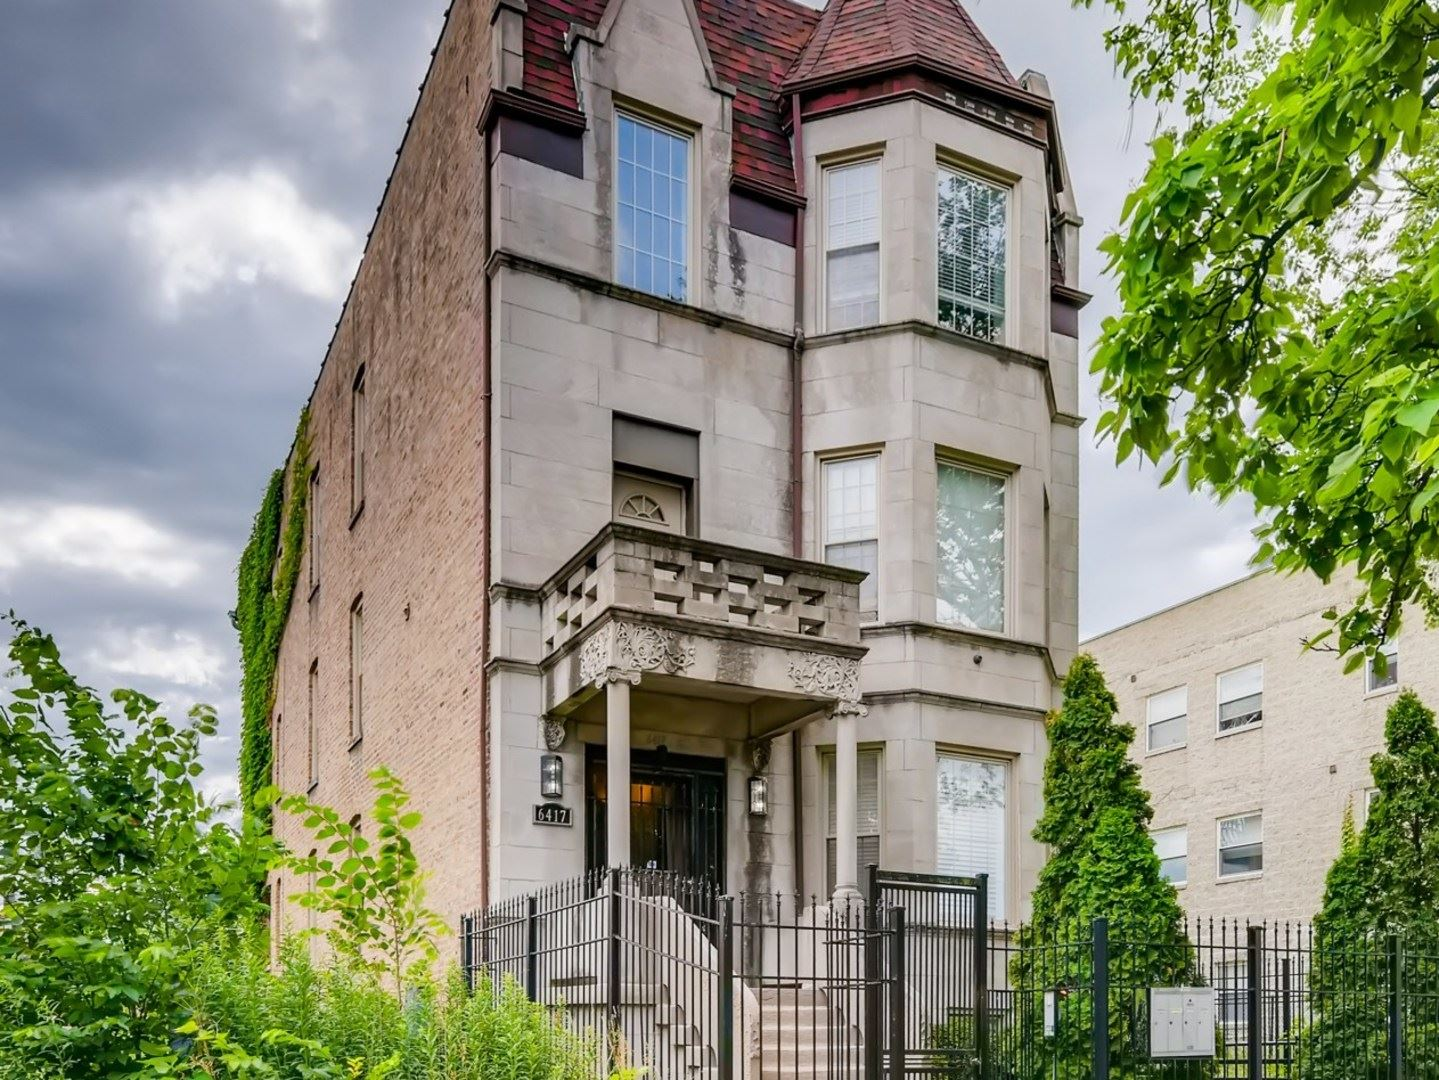 6417 S Maryland Avenue, Chicago, IL 60637 - #: 11155689